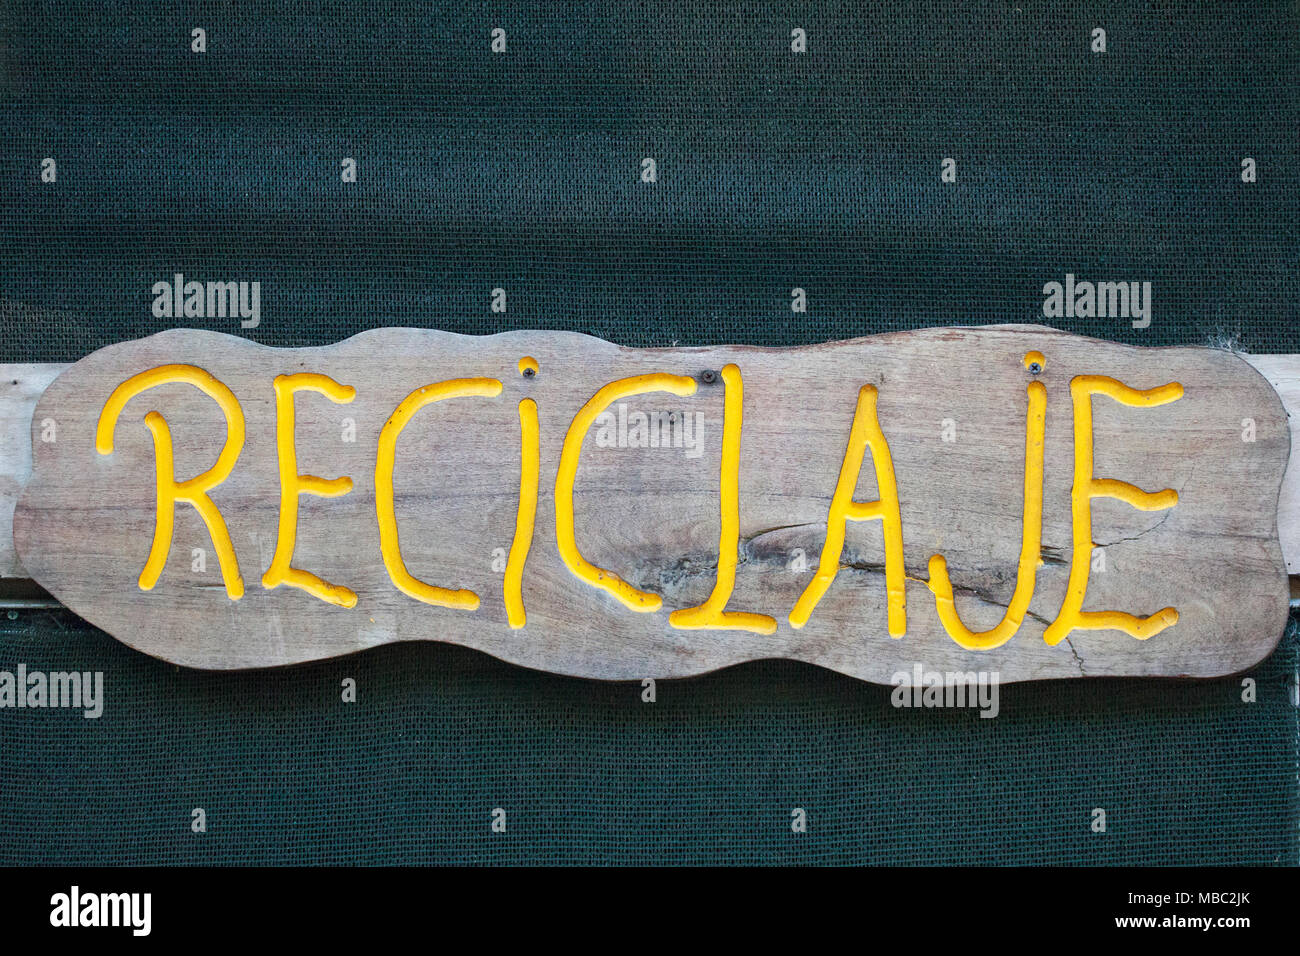 Reciclaje - Recycling sign in Spanish language - Stock Image